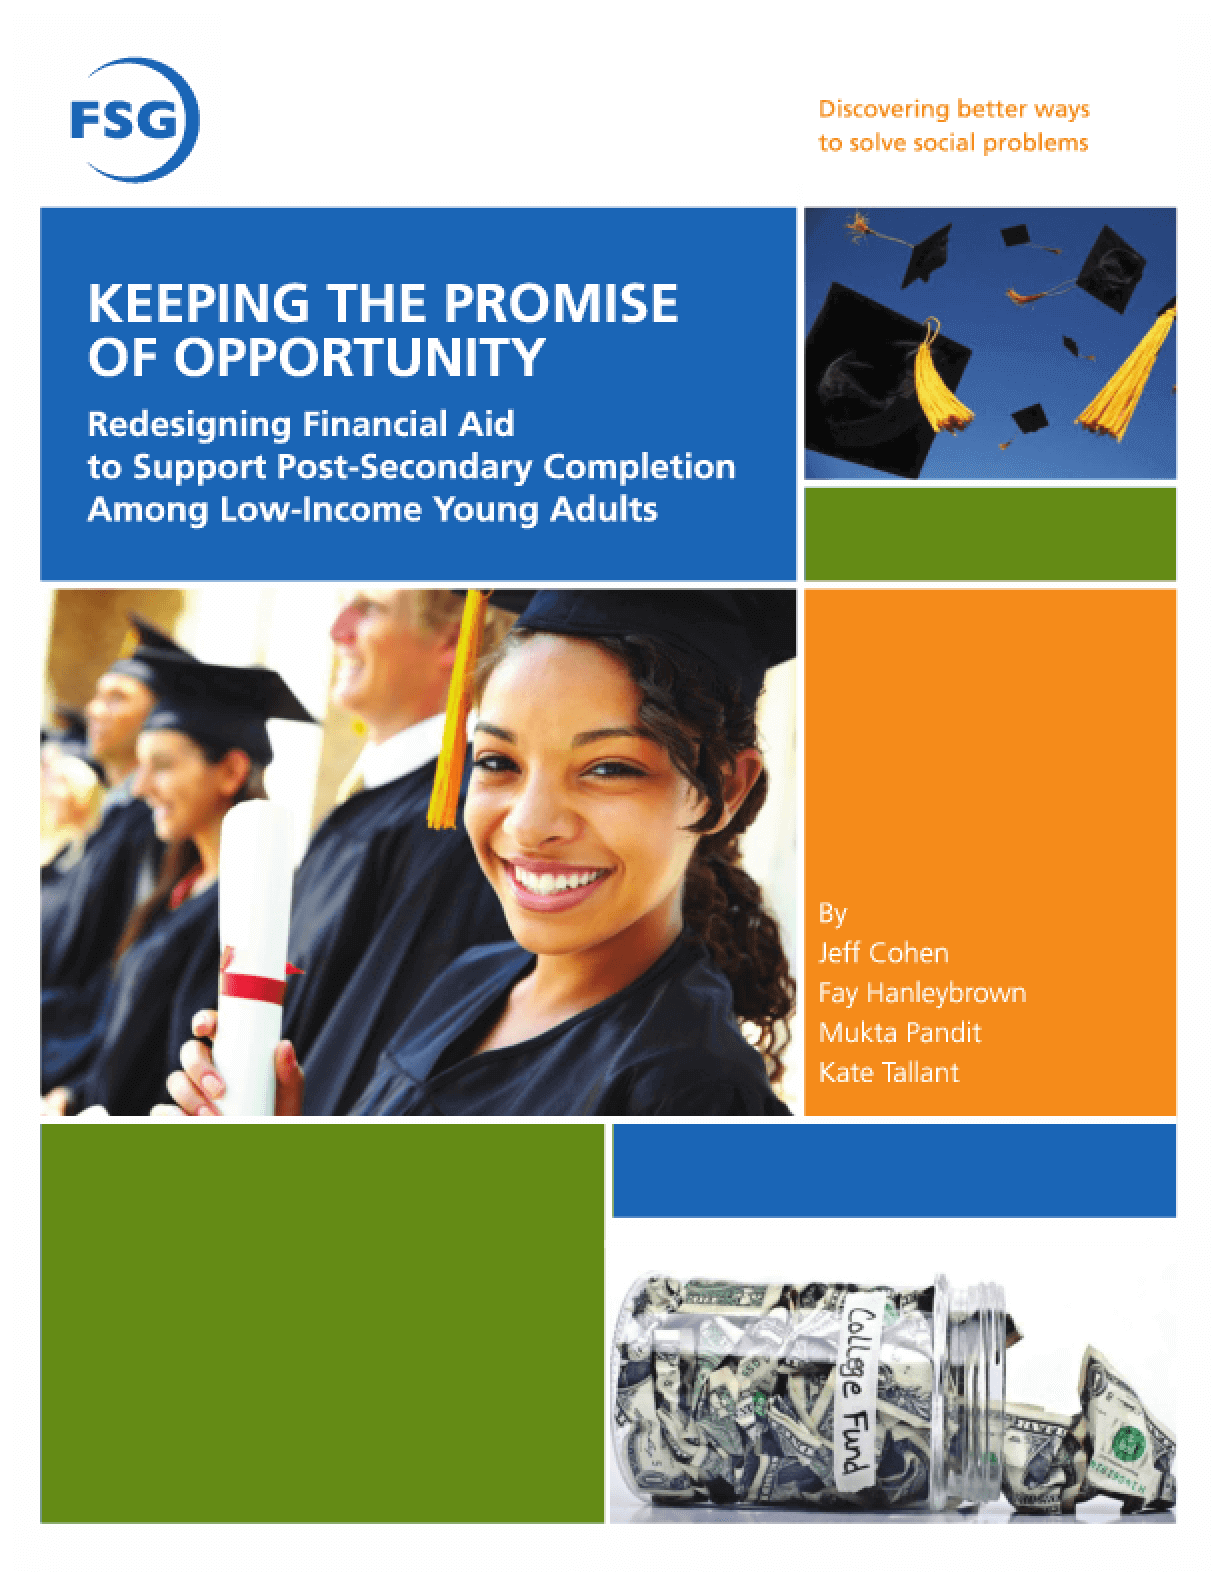 Keeping the Promise of Opportunity: Redesigning Financial Aid to Support Post-Secondary Completion Among Low-Income Young Adults